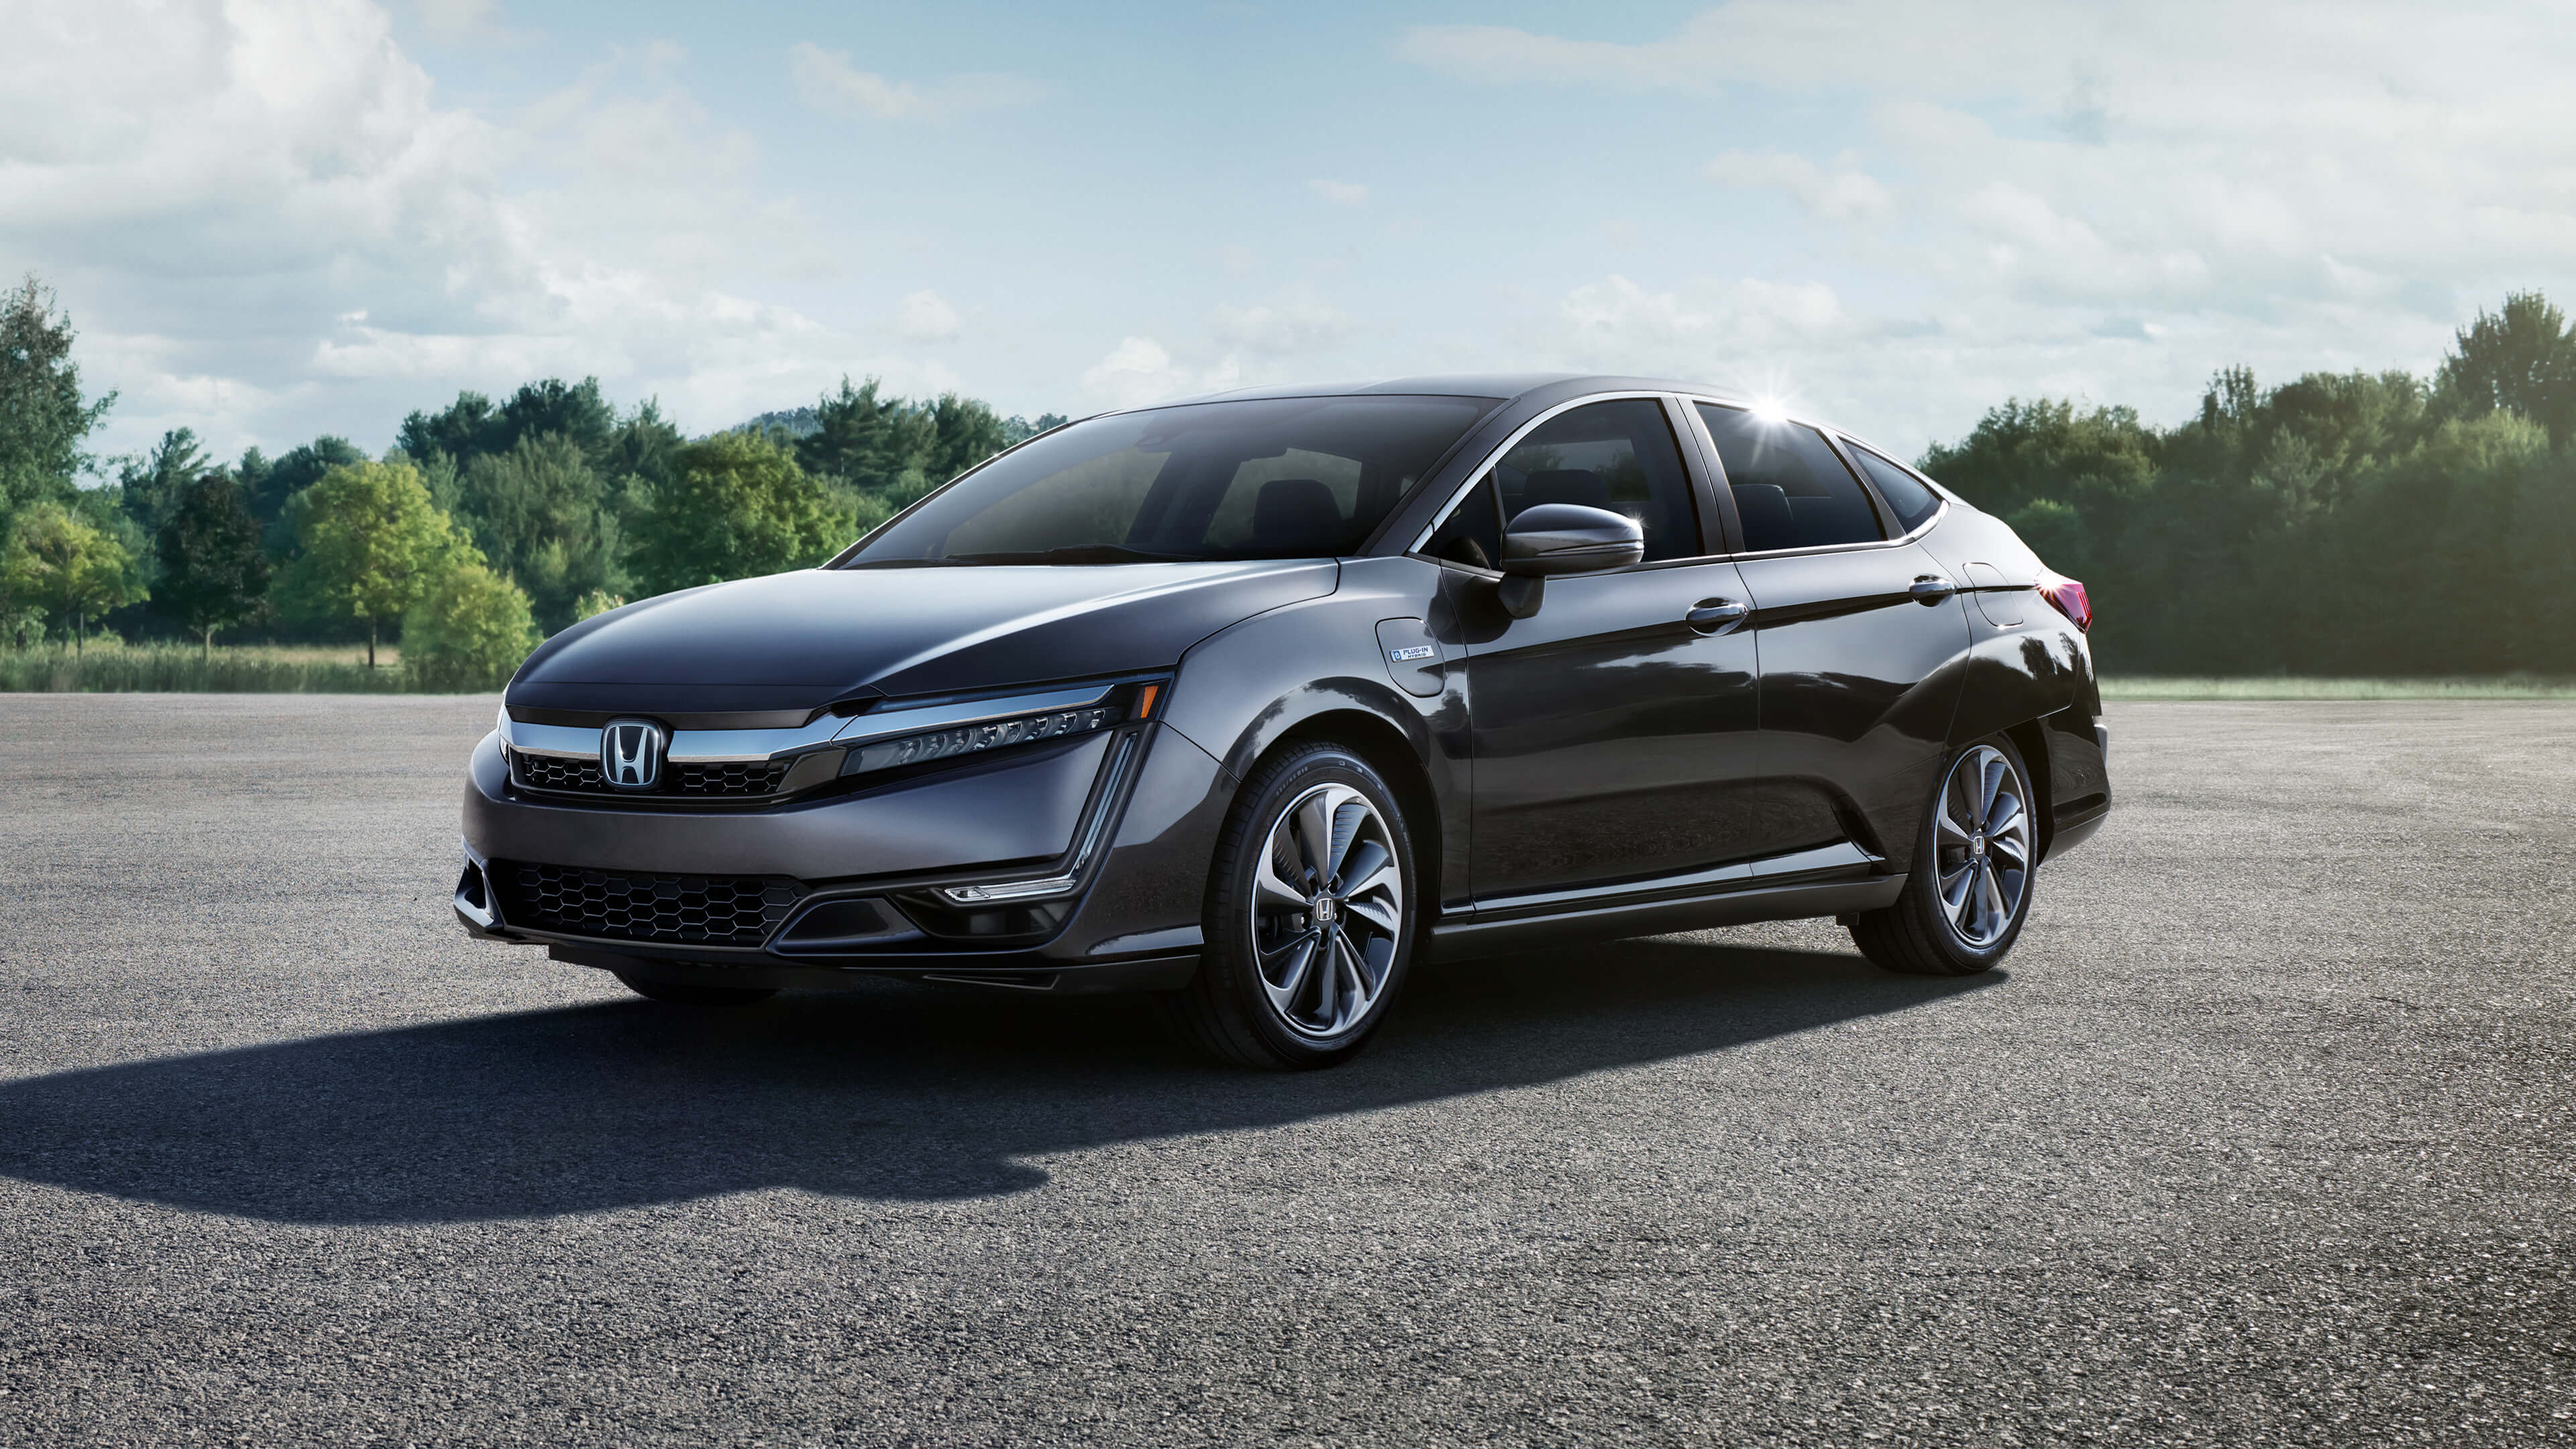 2020 Honda Clarity parked